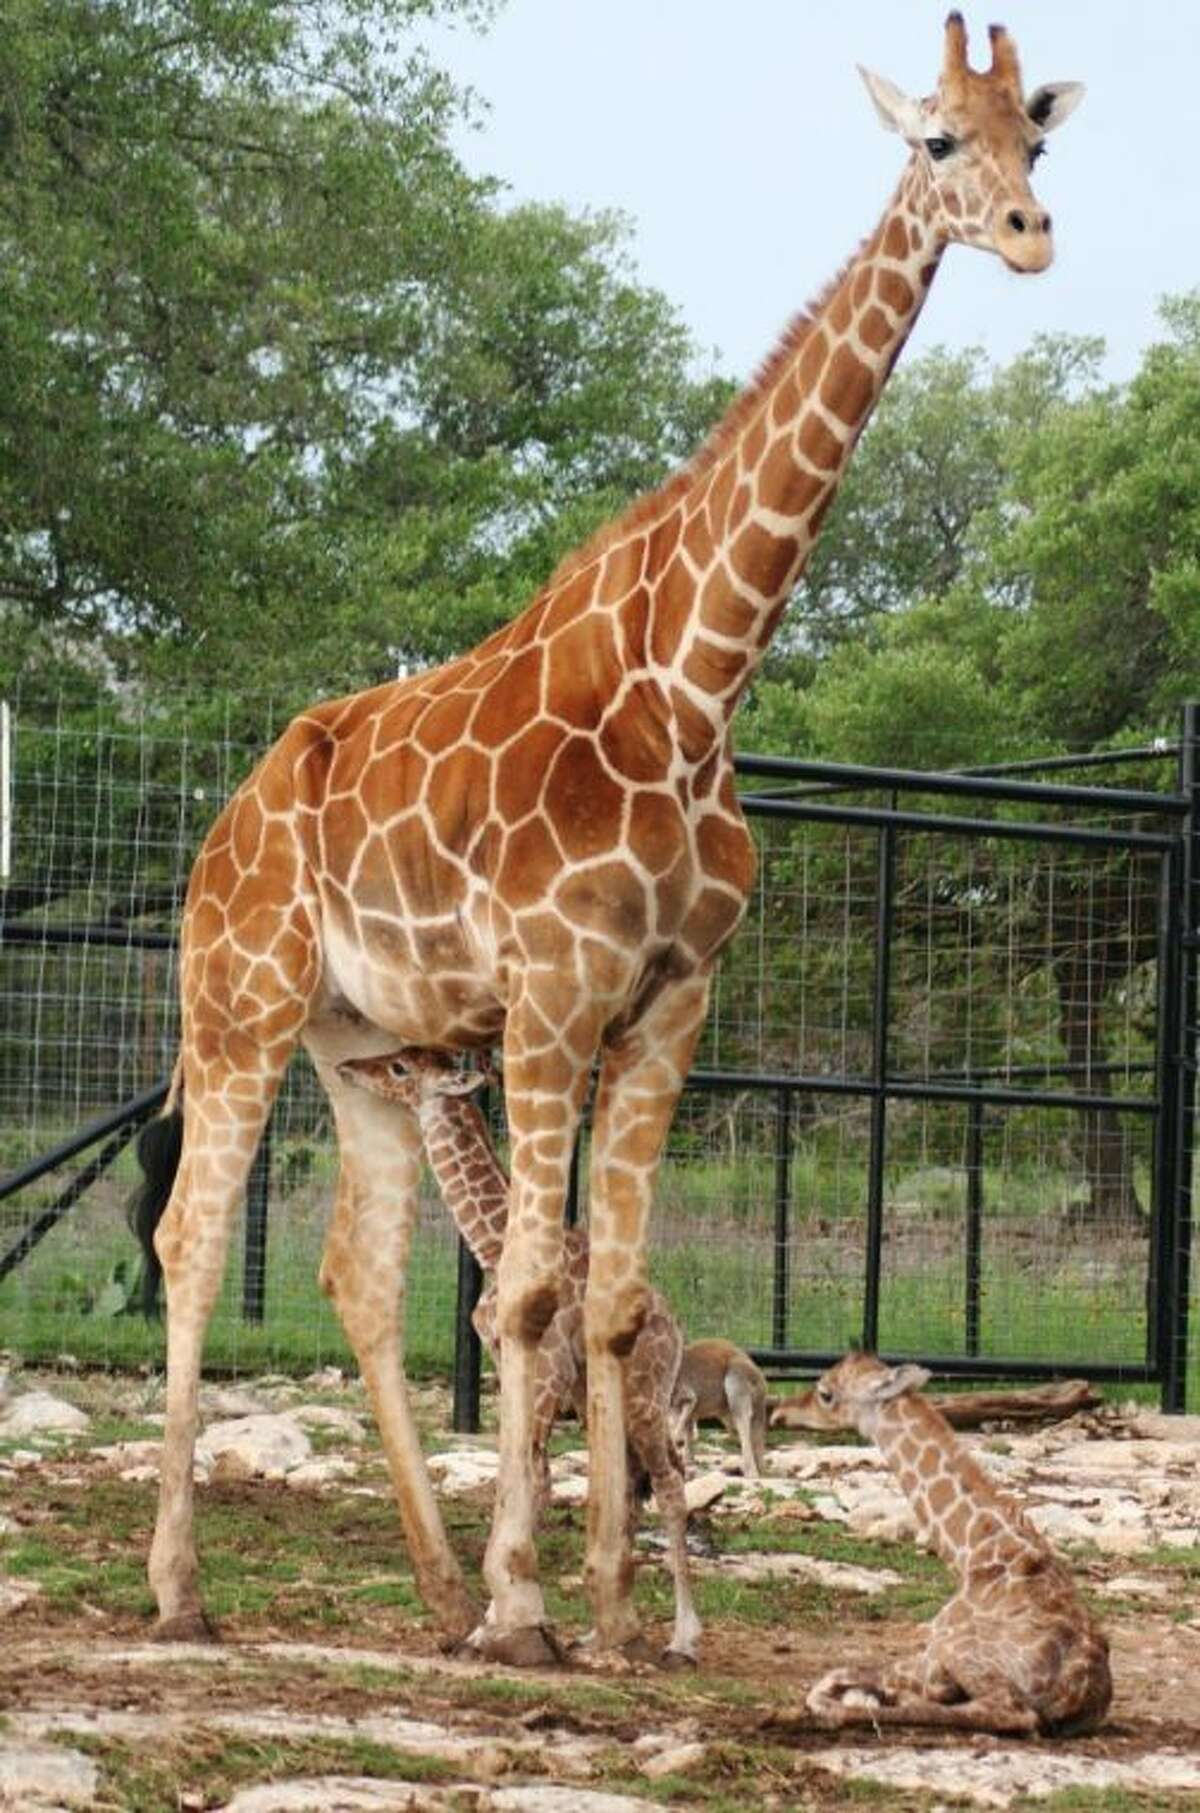 In this photo provided by the Natural Bridge Wildlife Ranch, Wasswa, a female twin giraffe, nurses shortly after birth in New Braunfels, Texas. Officials with the Natural Bridge Wildlife Ranch say twin giraffes have been born, marking just the second time such a birth has occurred in the U.S.